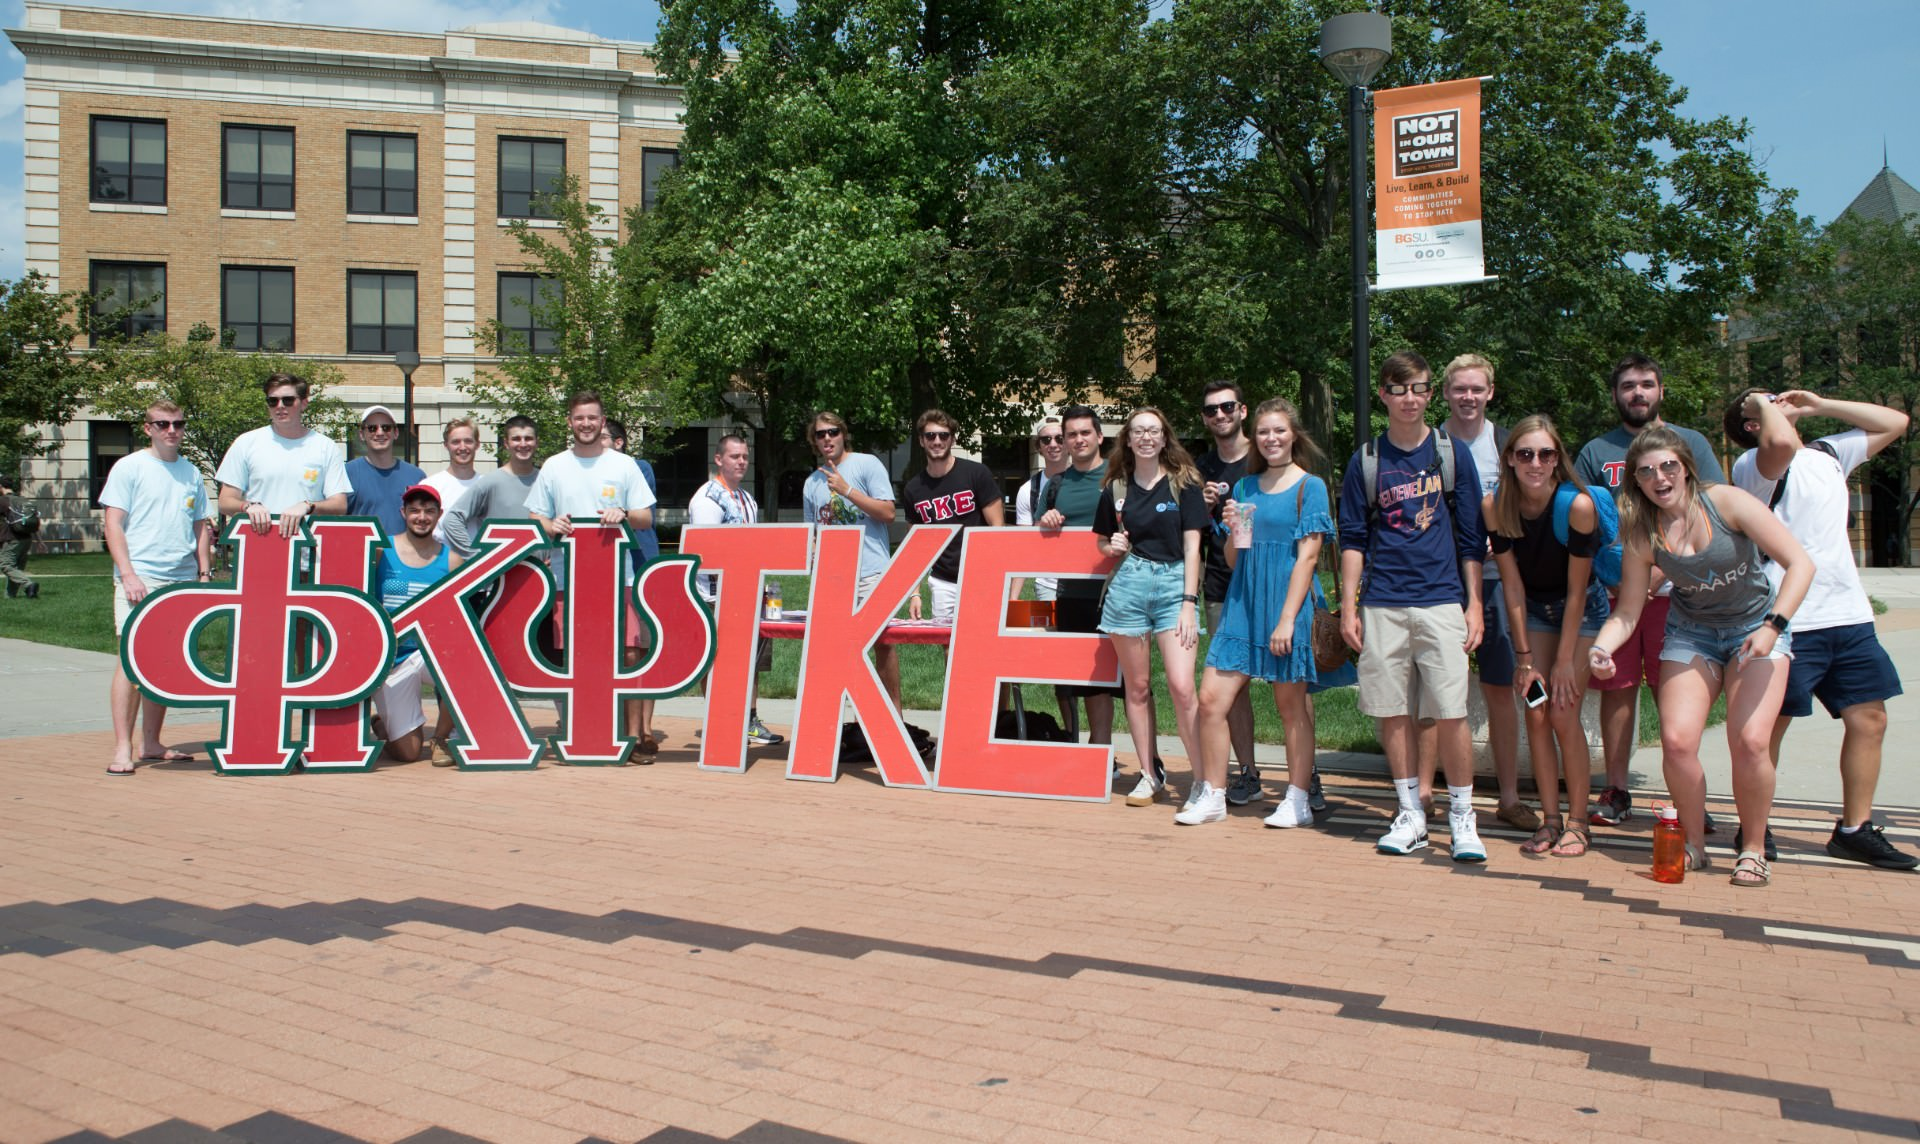 Group of students standing near fraternity sign